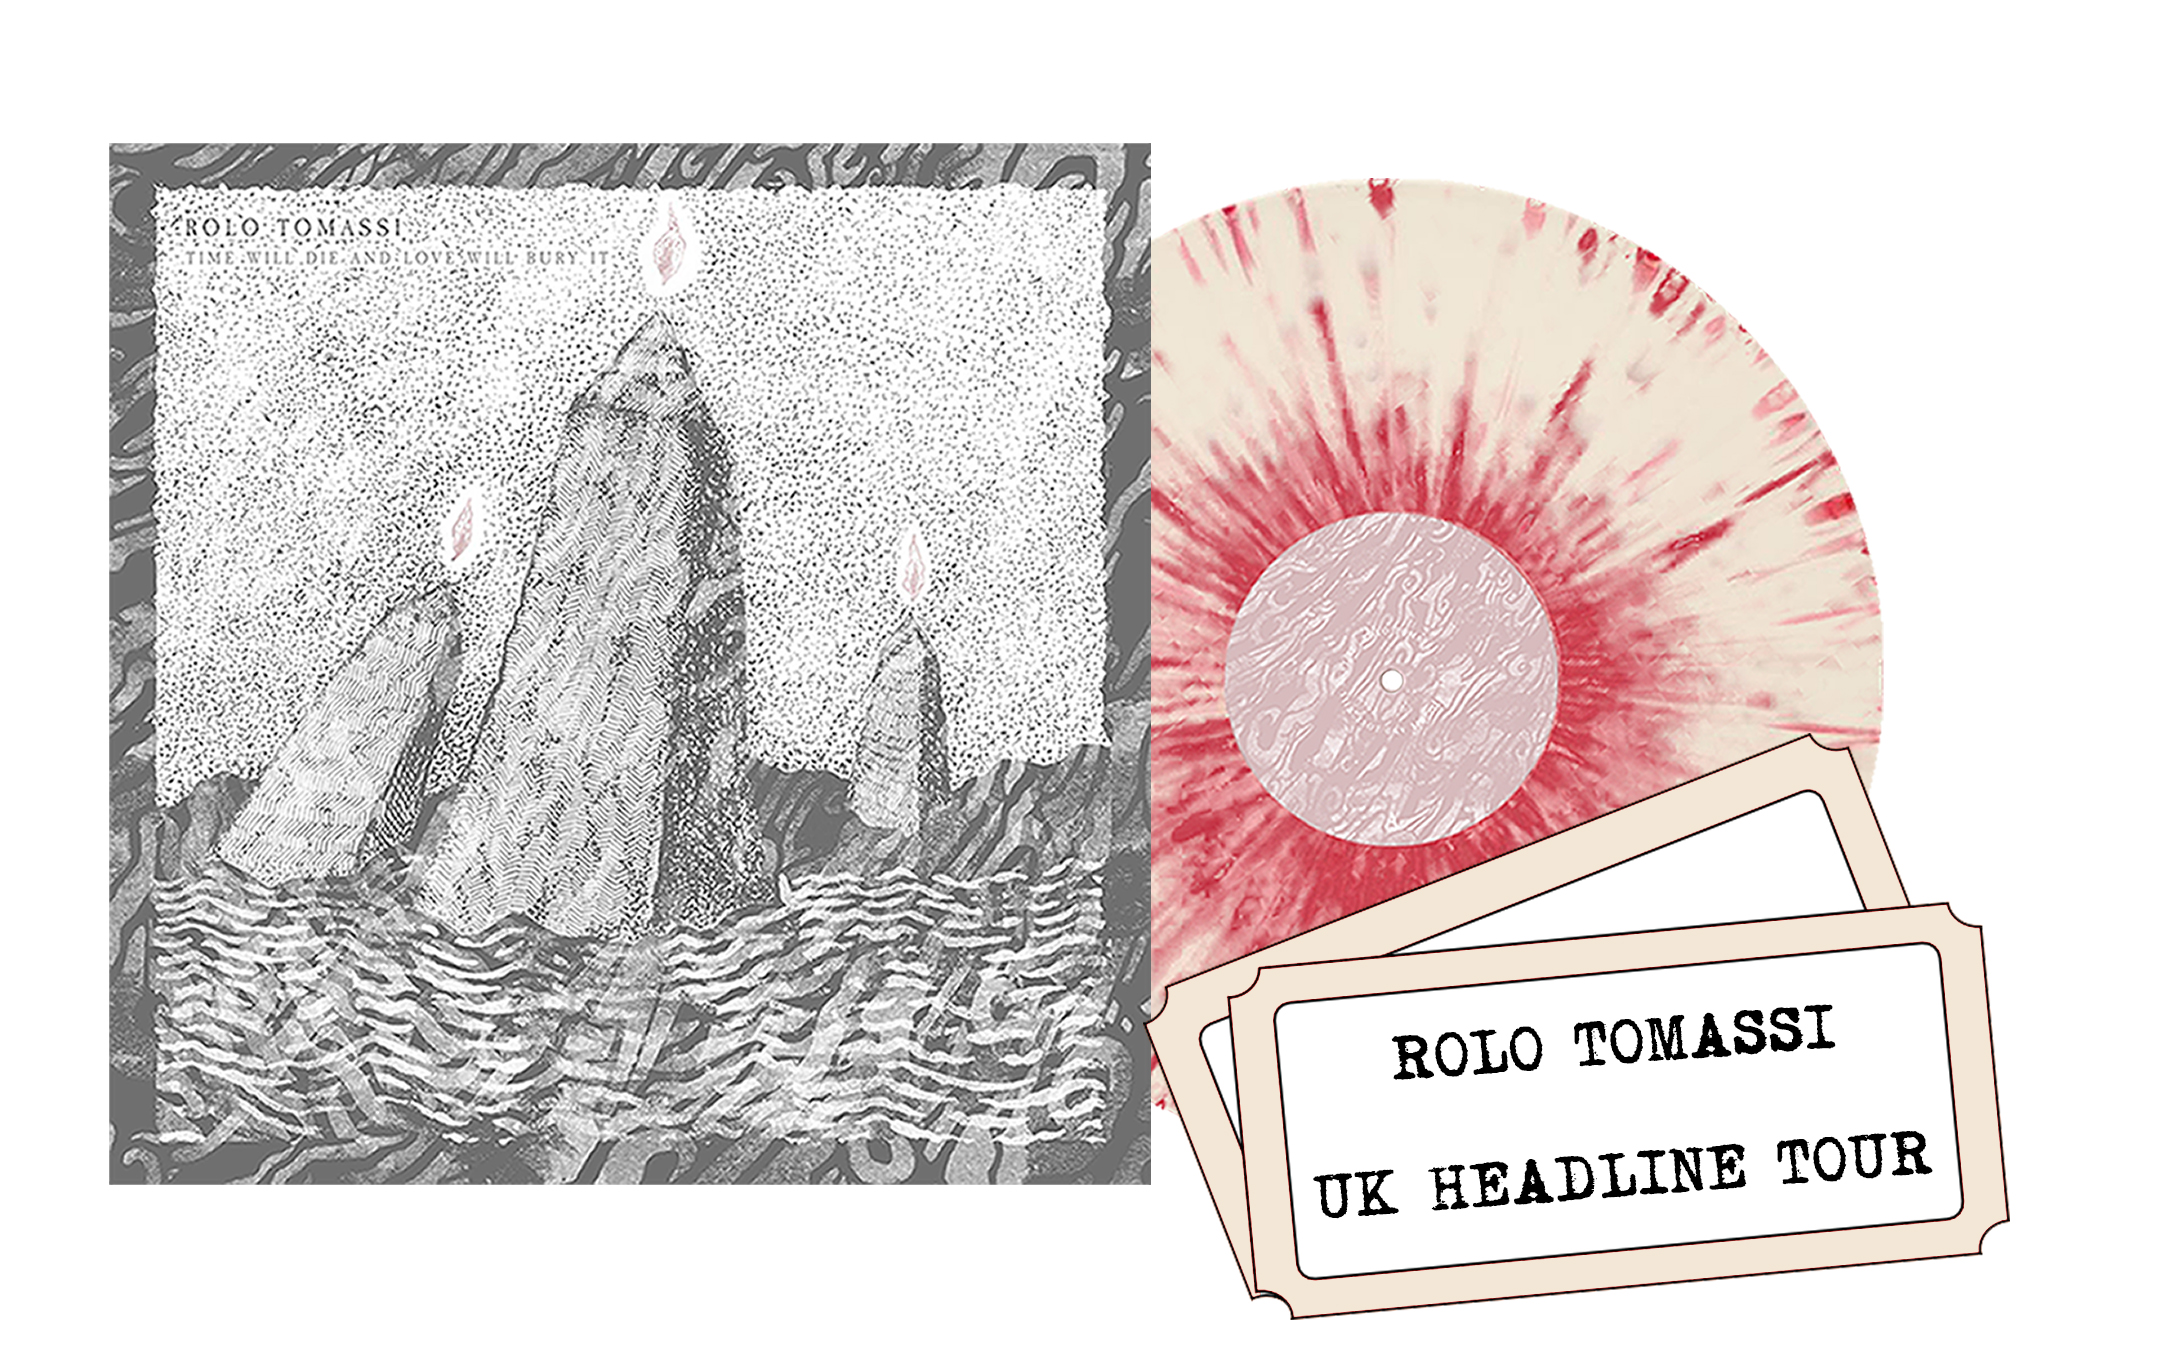 Rolo Tomassi - '...Love Will Bury It' 2xLP + UK headline show ticket